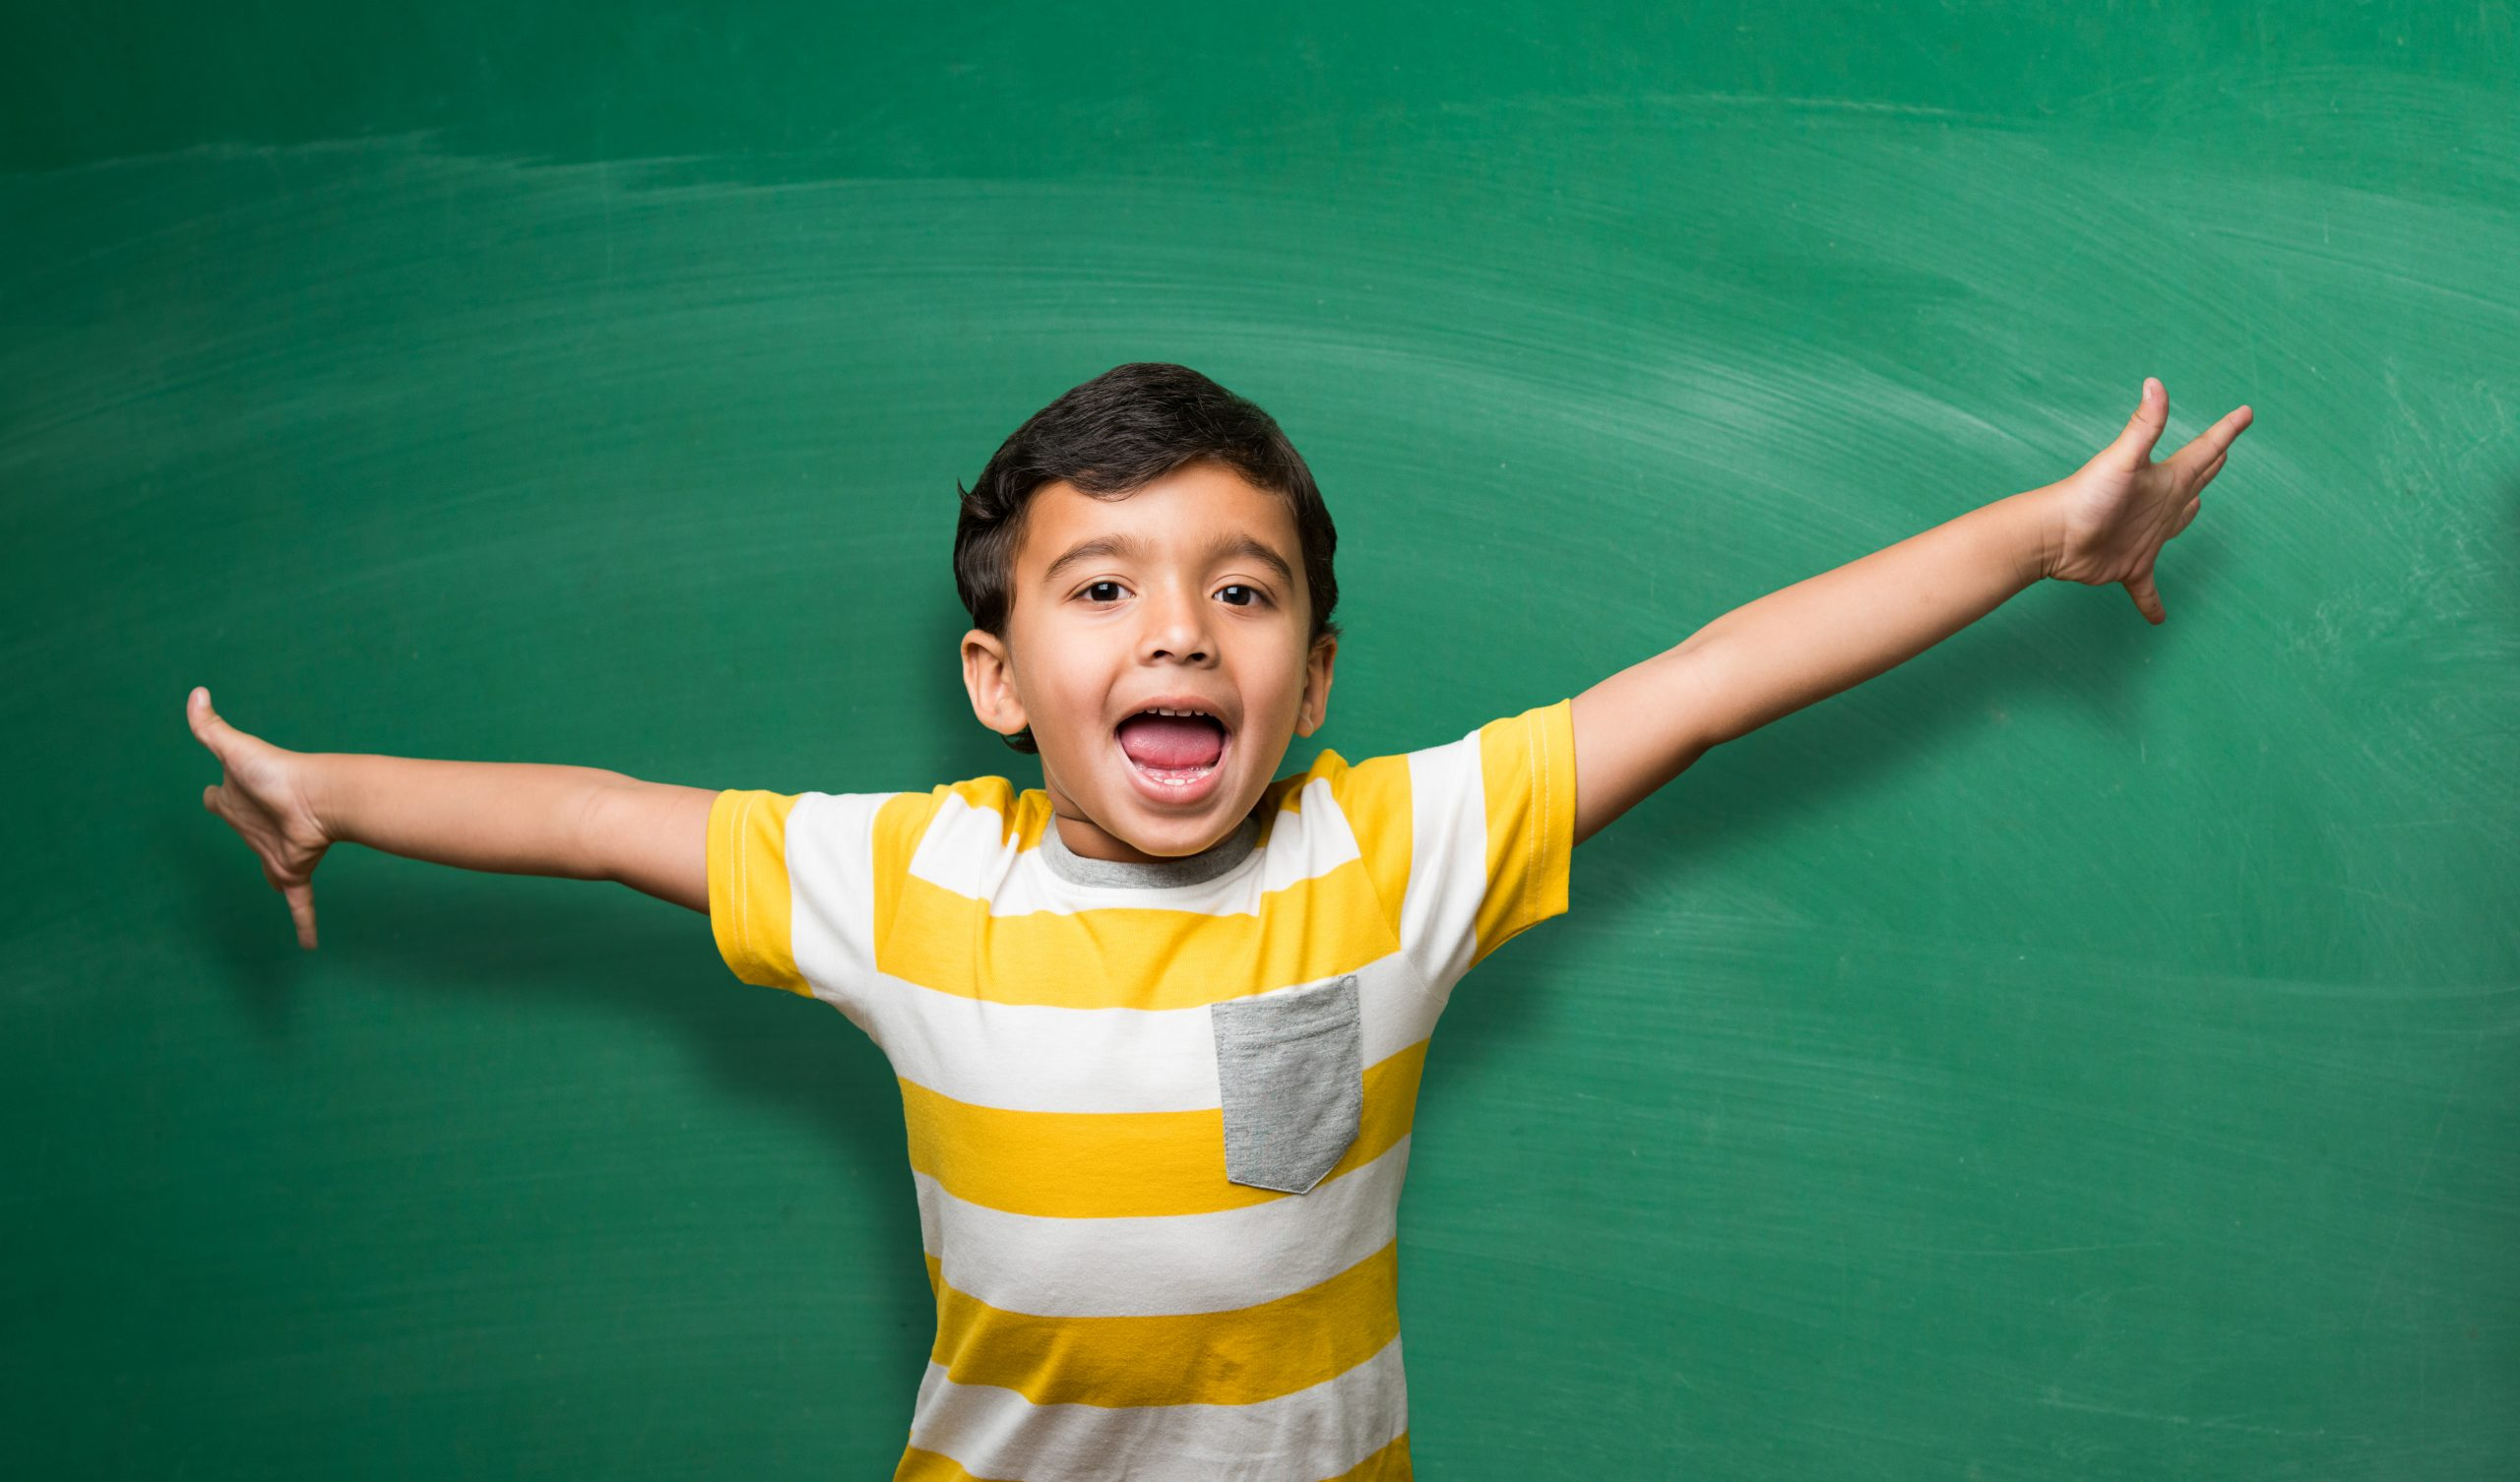 Cute little Indian school kid boy in hand stretched pose over green chalkboard or chalk board background holding books, victory cup etc, isolated